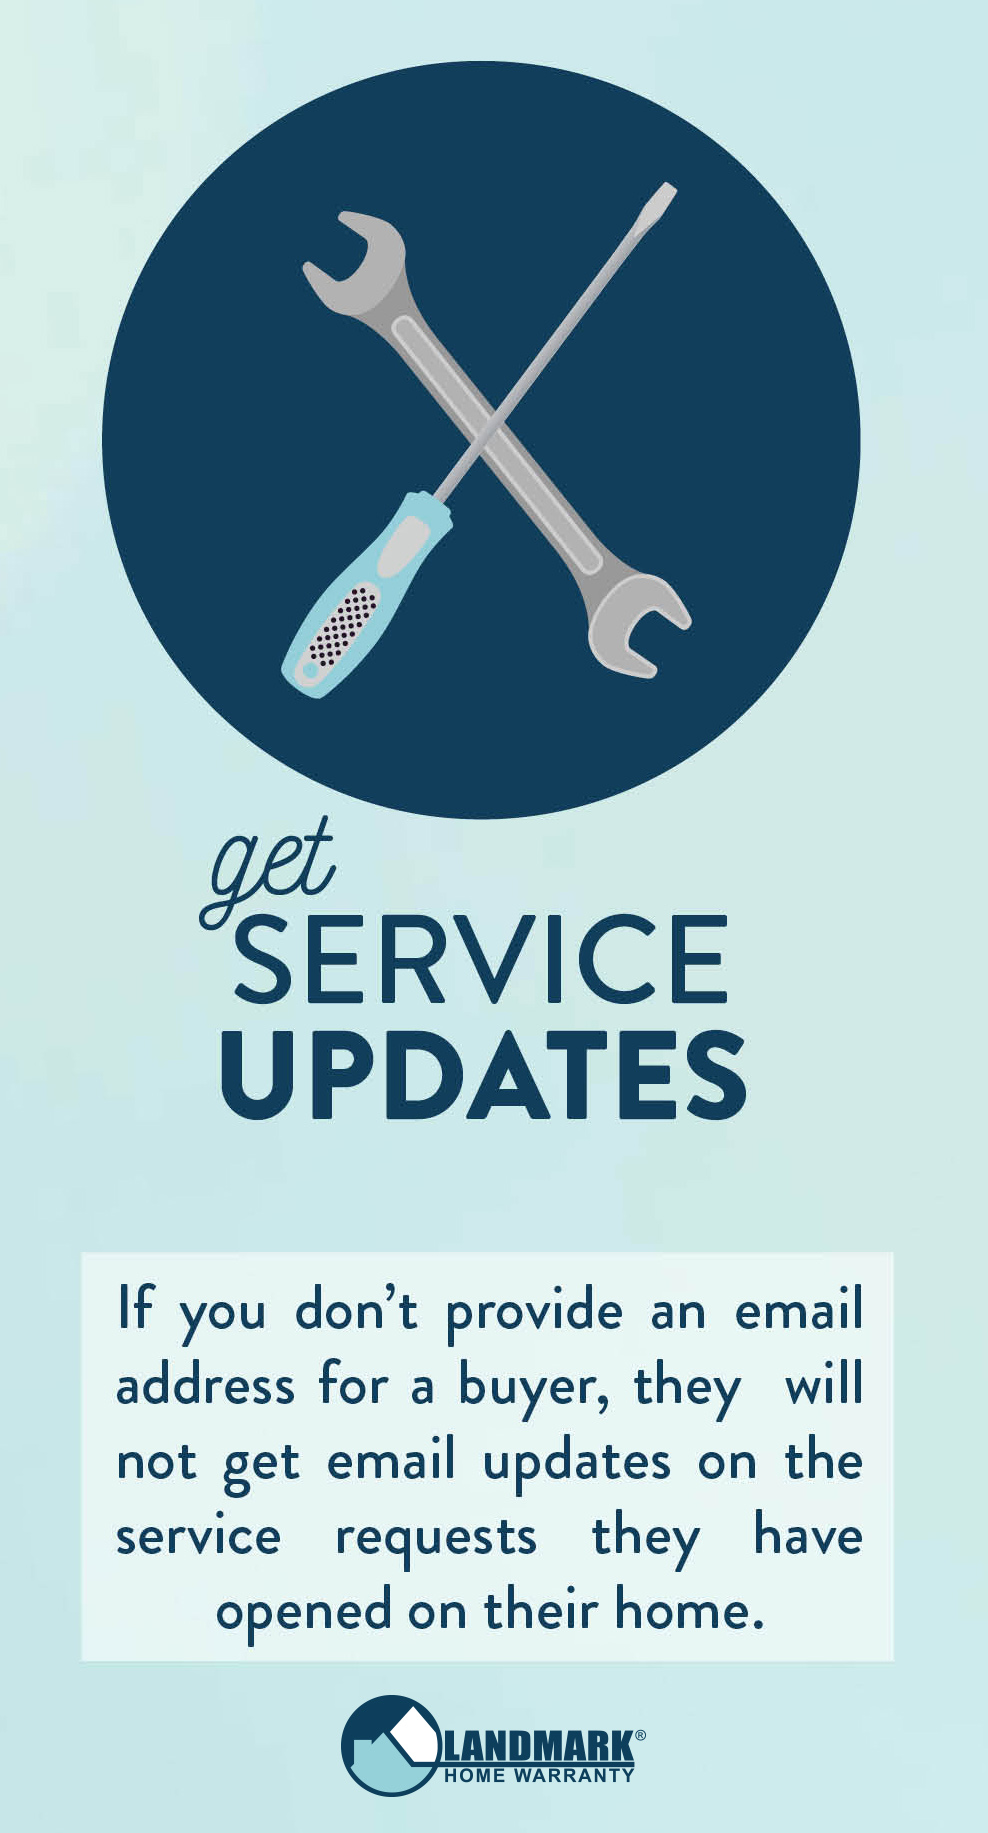 Without an email, homeowners cannot get service request updates.